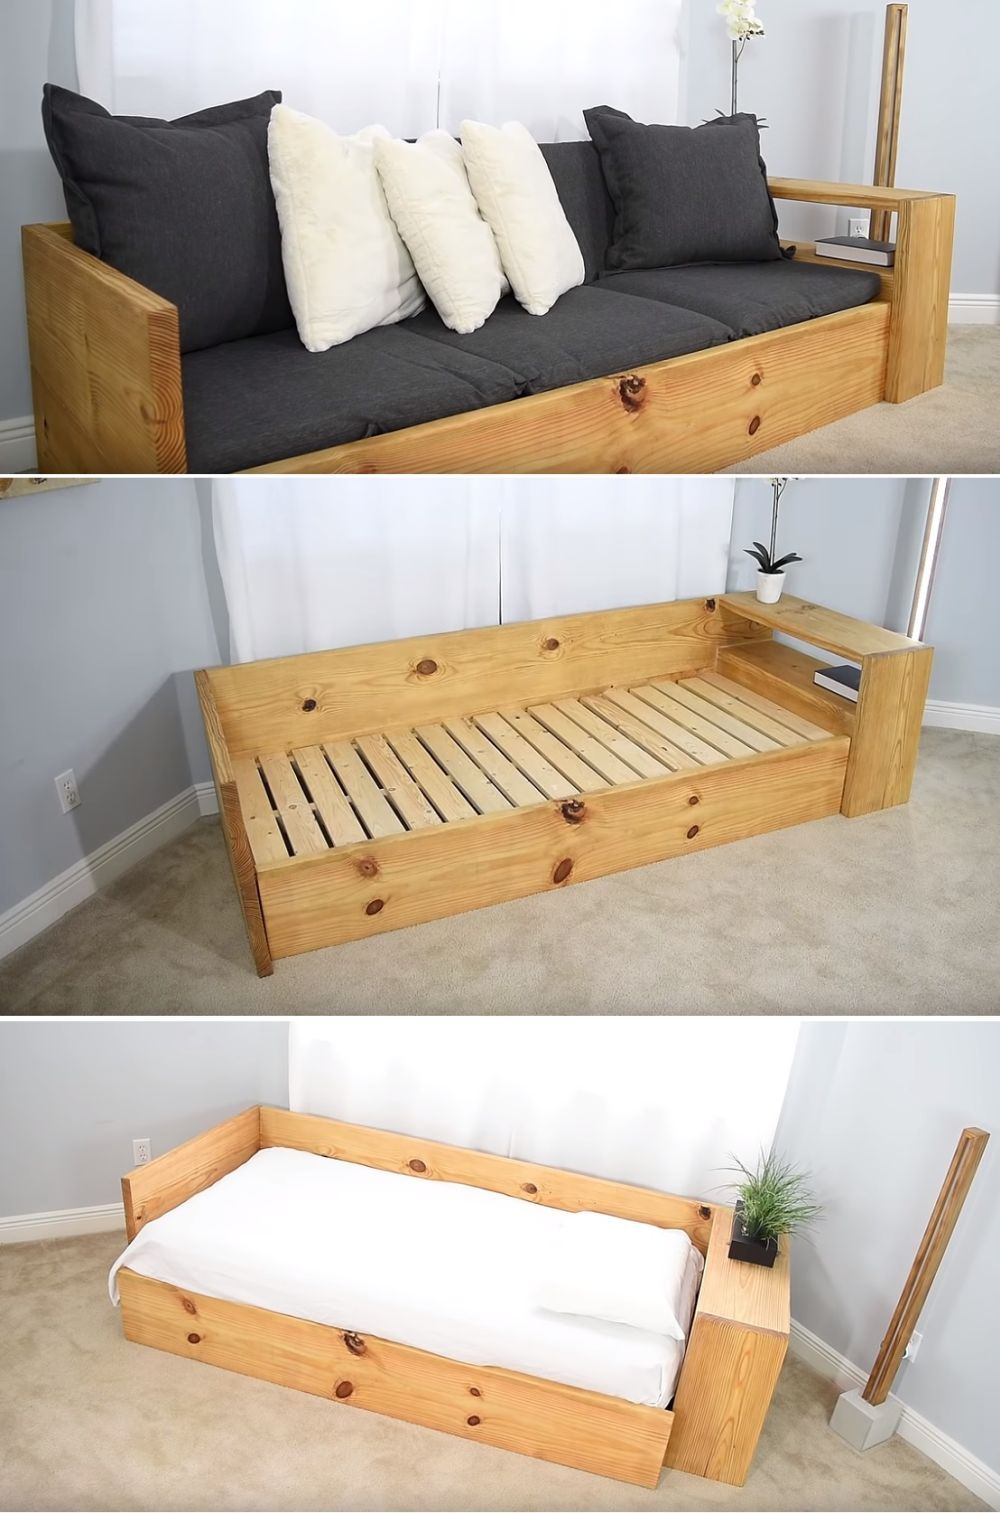 10 Easy Ways To Build A Diy Couch Without Breaking The Bank Diy